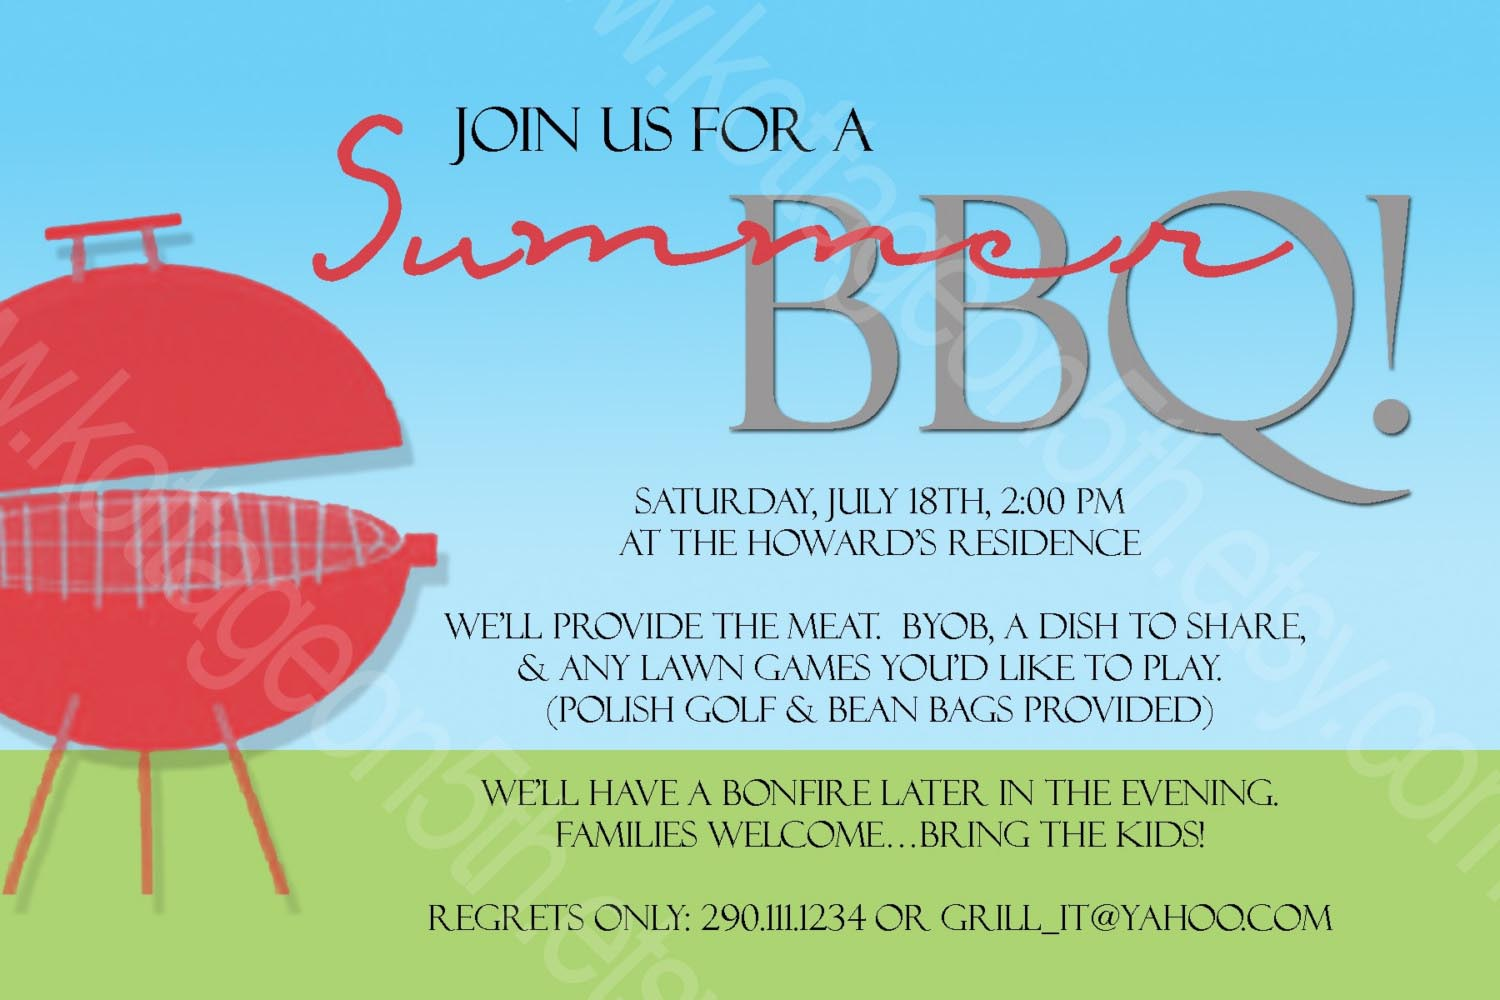 Bbq party invitation wording ideas fire pit design ideas bbq party invitation wording ideas stopboris Gallery